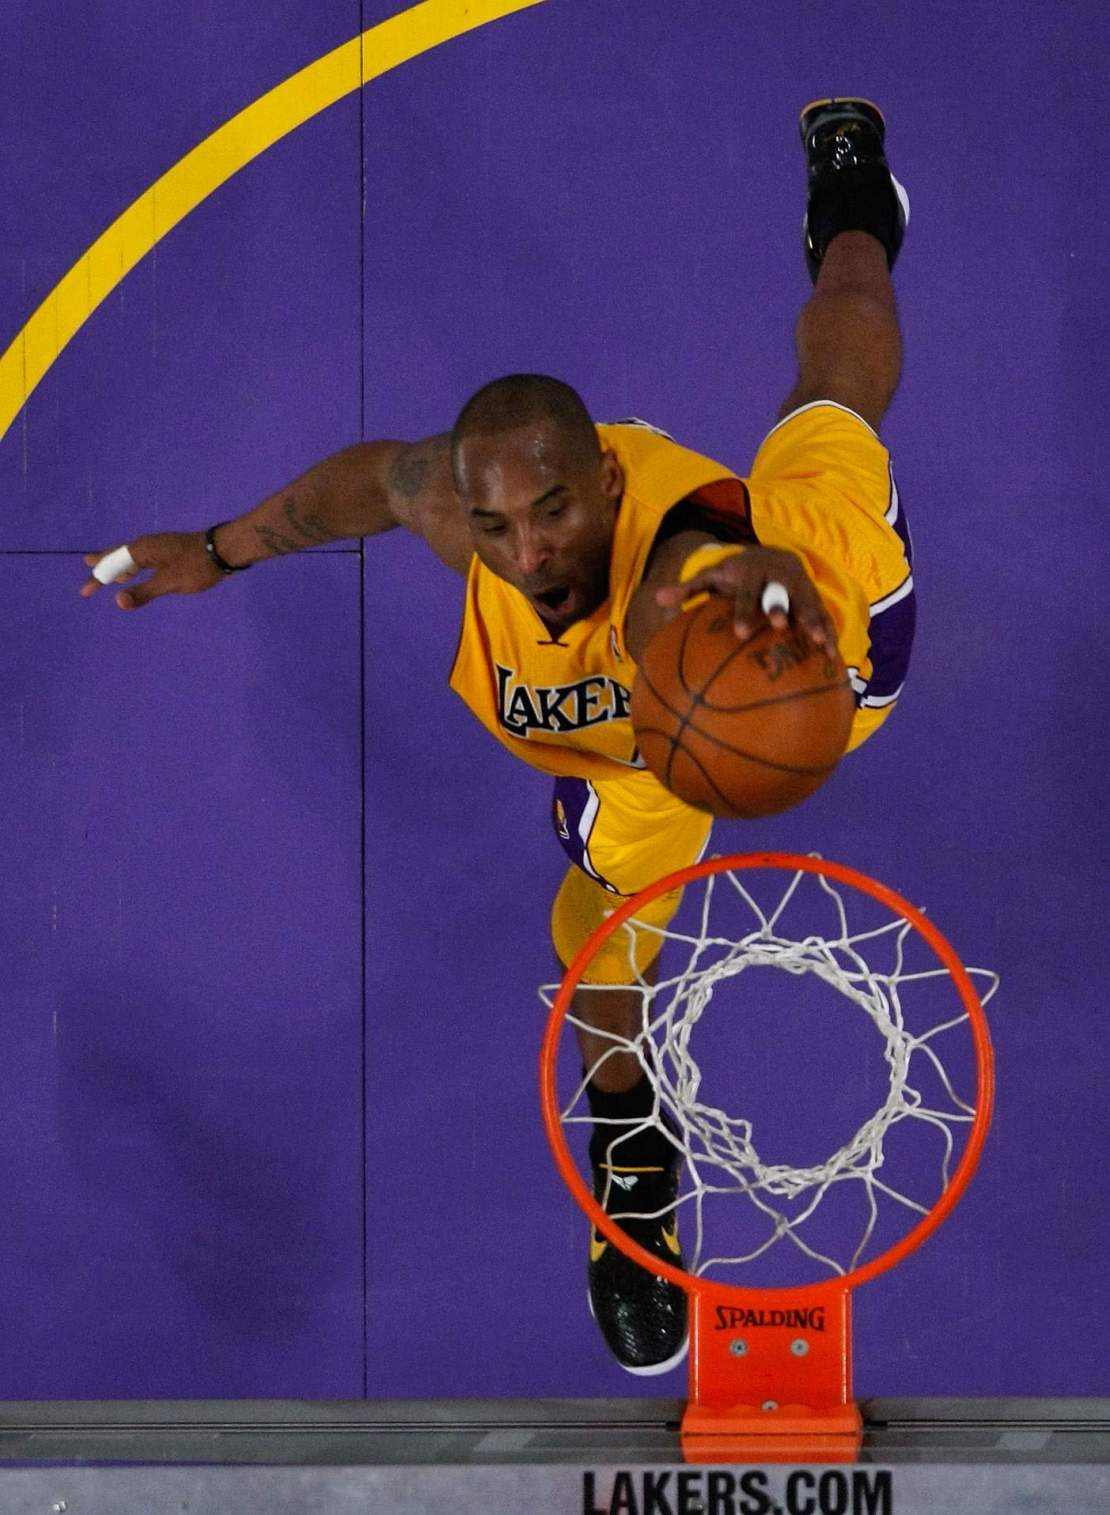 Kobe Bryant dunks with his left hand in the third quarter against the New Orleans Hornets in Game 5 of the Western Conference Quarterfinals in the 2011 NBA Playoffs.